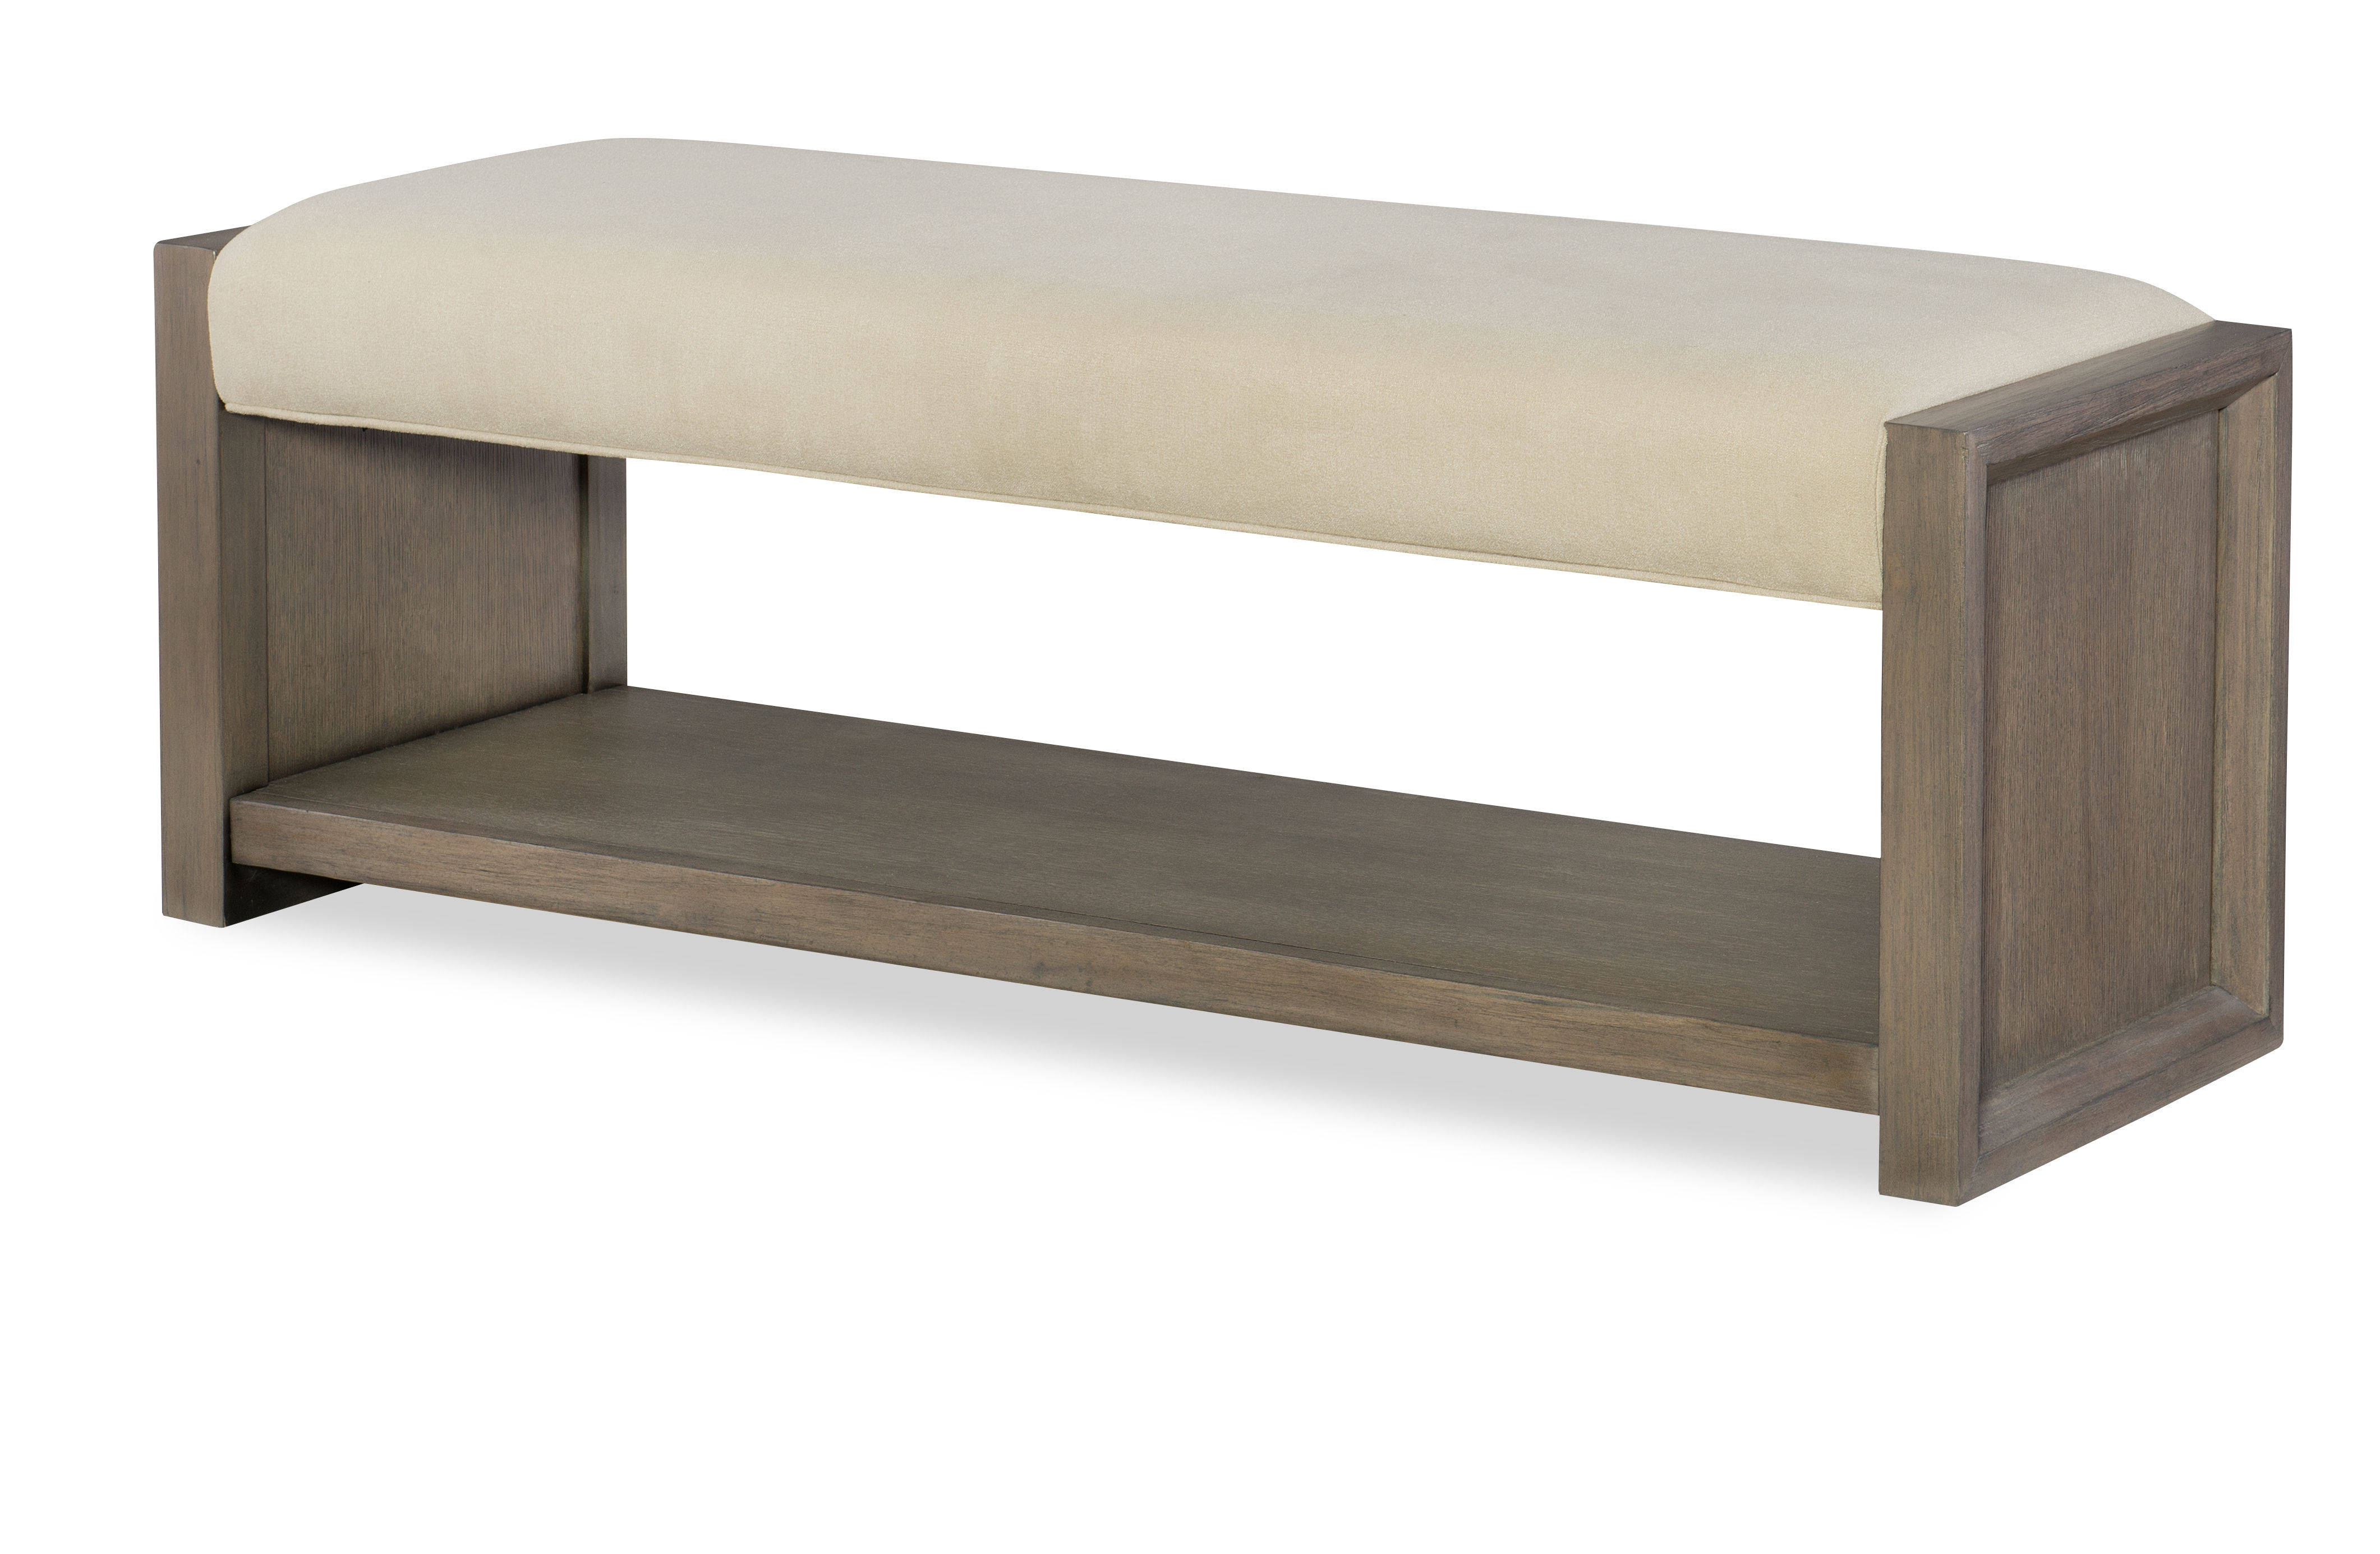 Enjoyable Legacy Furniture Highline By Rachael Ray Greige Upholstered Bench Pabps2019 Chair Design Images Pabps2019Com